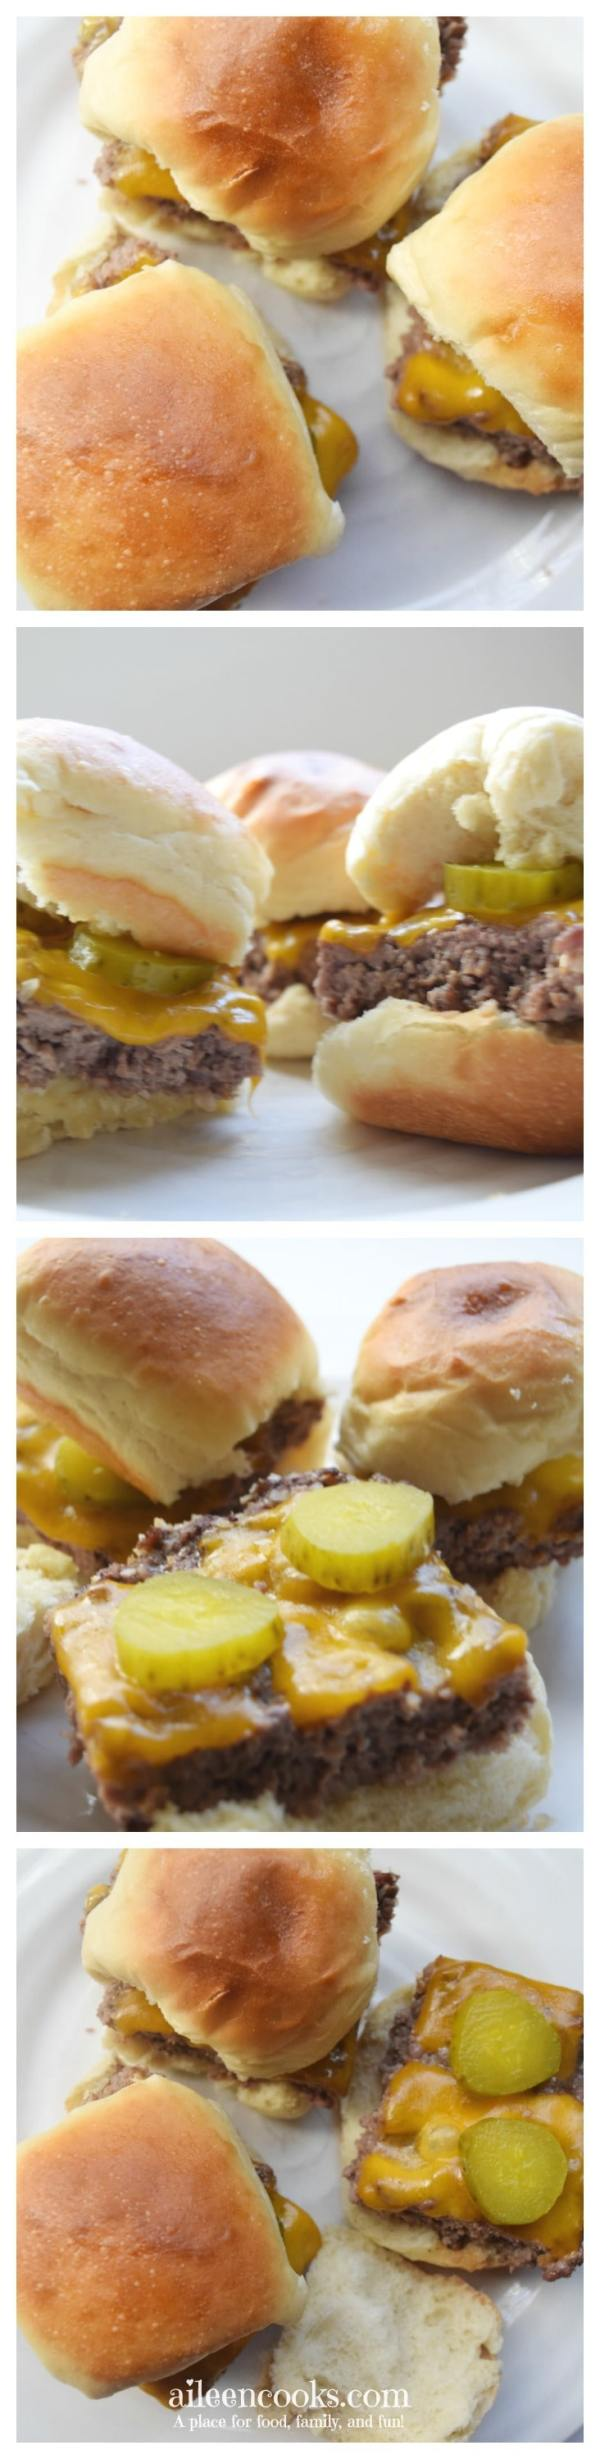 Skip the grill with these easy cheeseburger sliders. They are flavorful and comforting. The best news? They will be ready in 30 minutes!